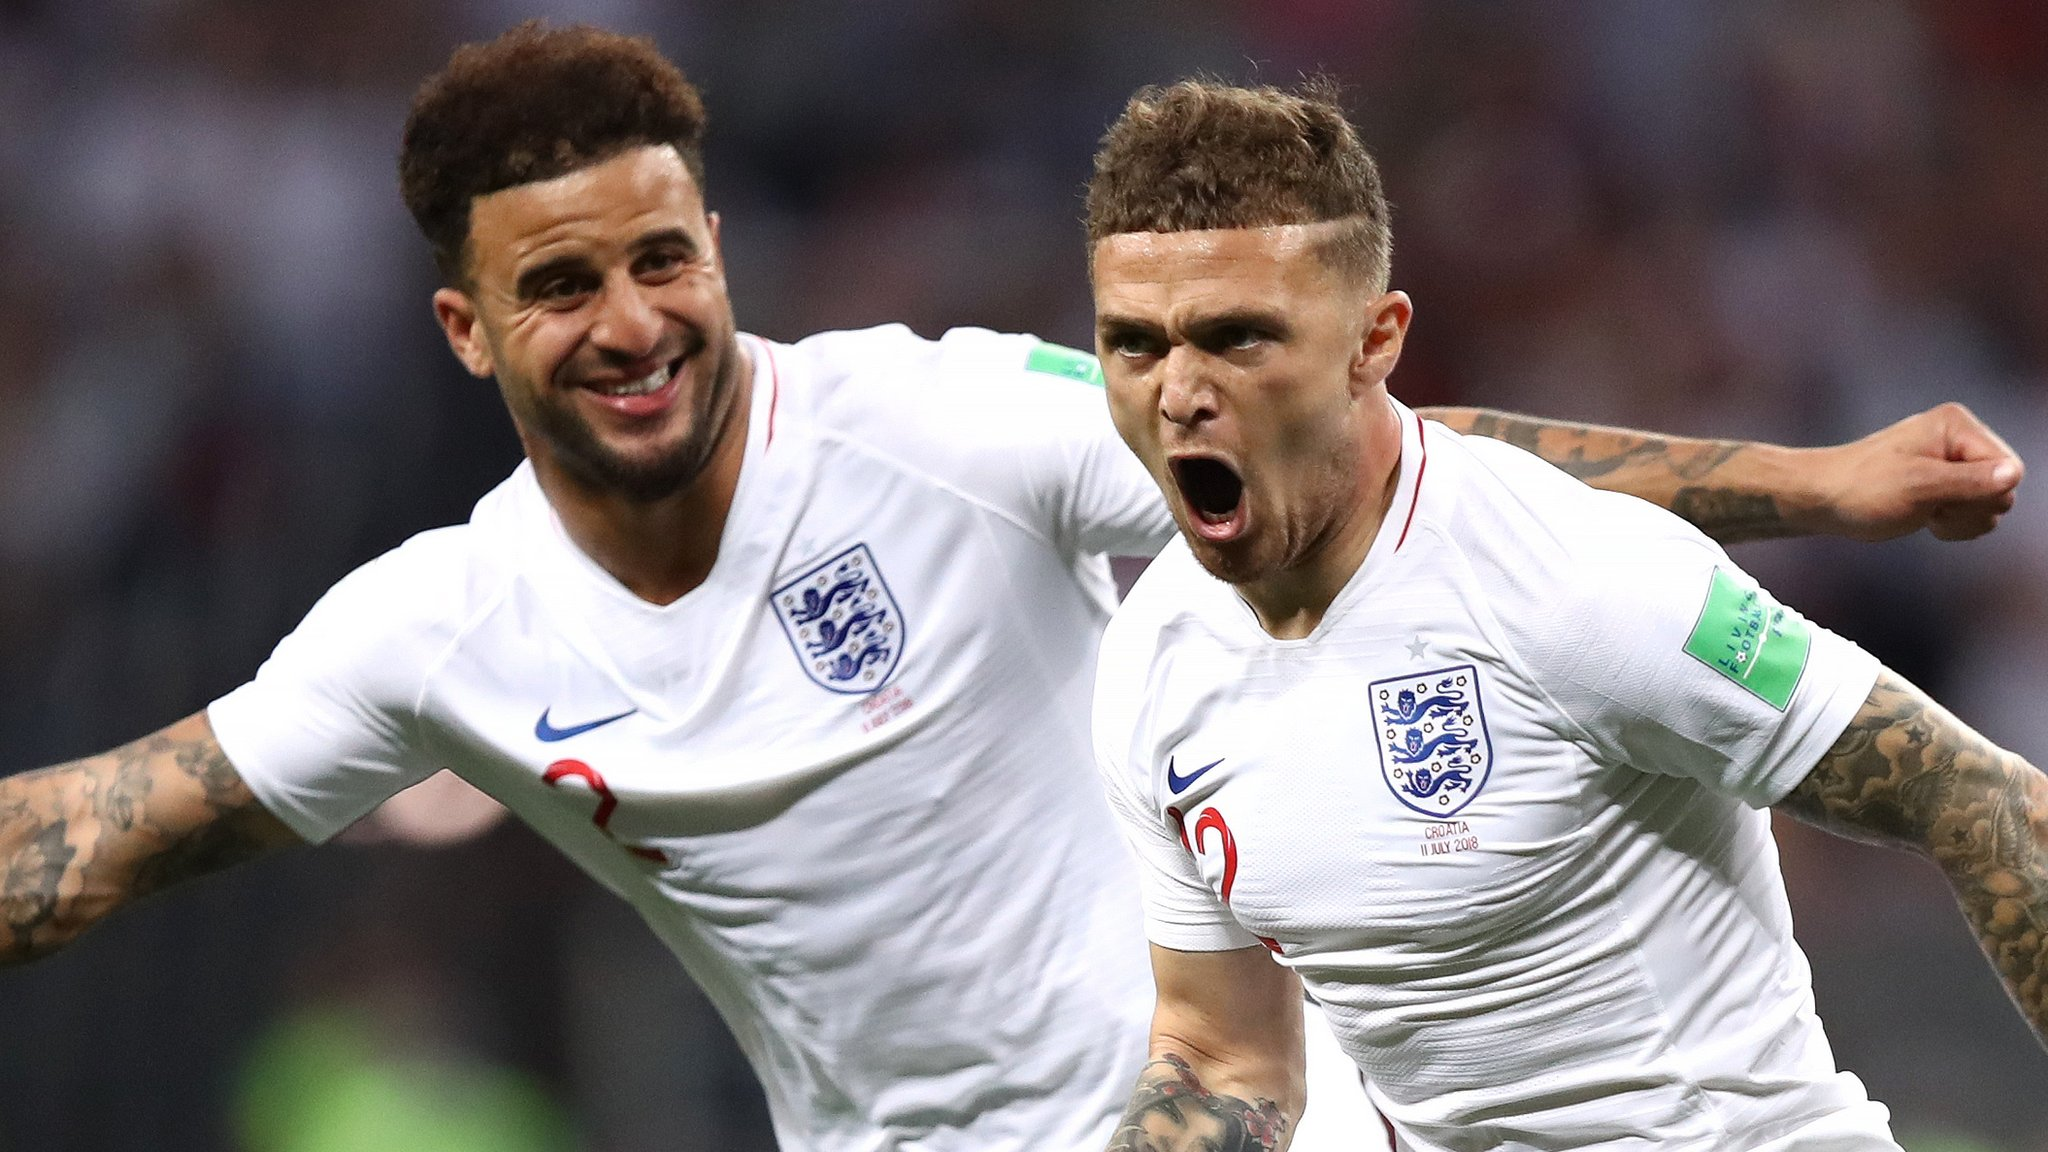 Were England good, lucky, or a bit of both? Check the stats